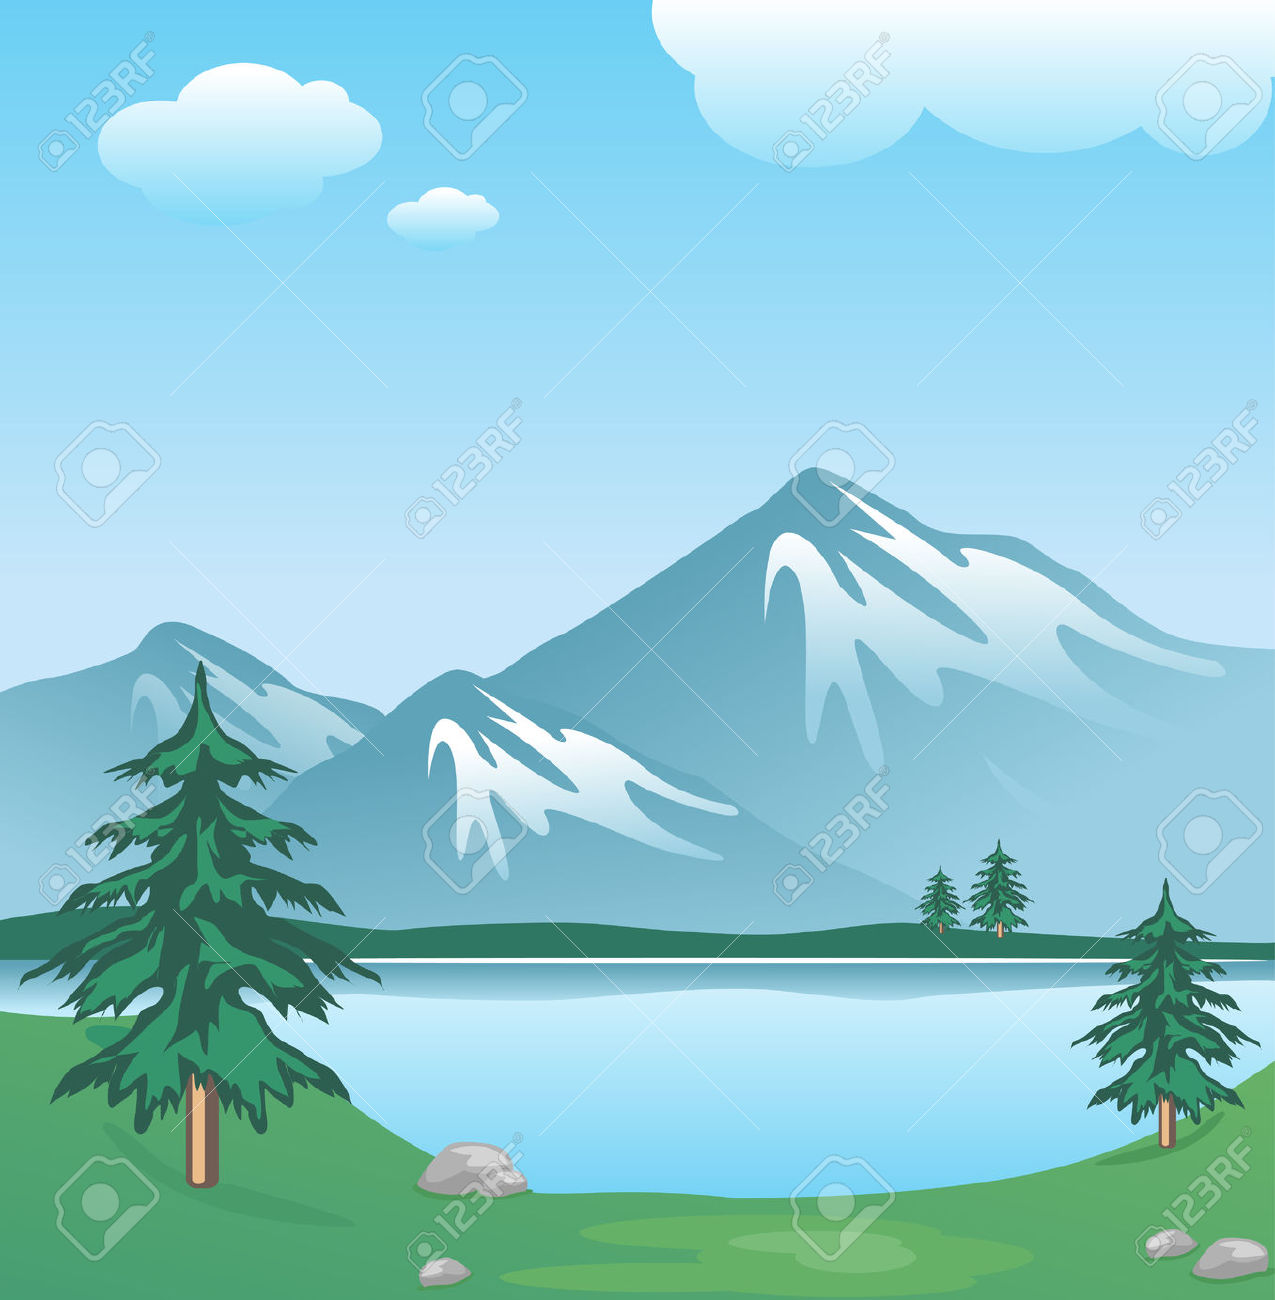 Clipart winter lake. Techlodia image clipartix